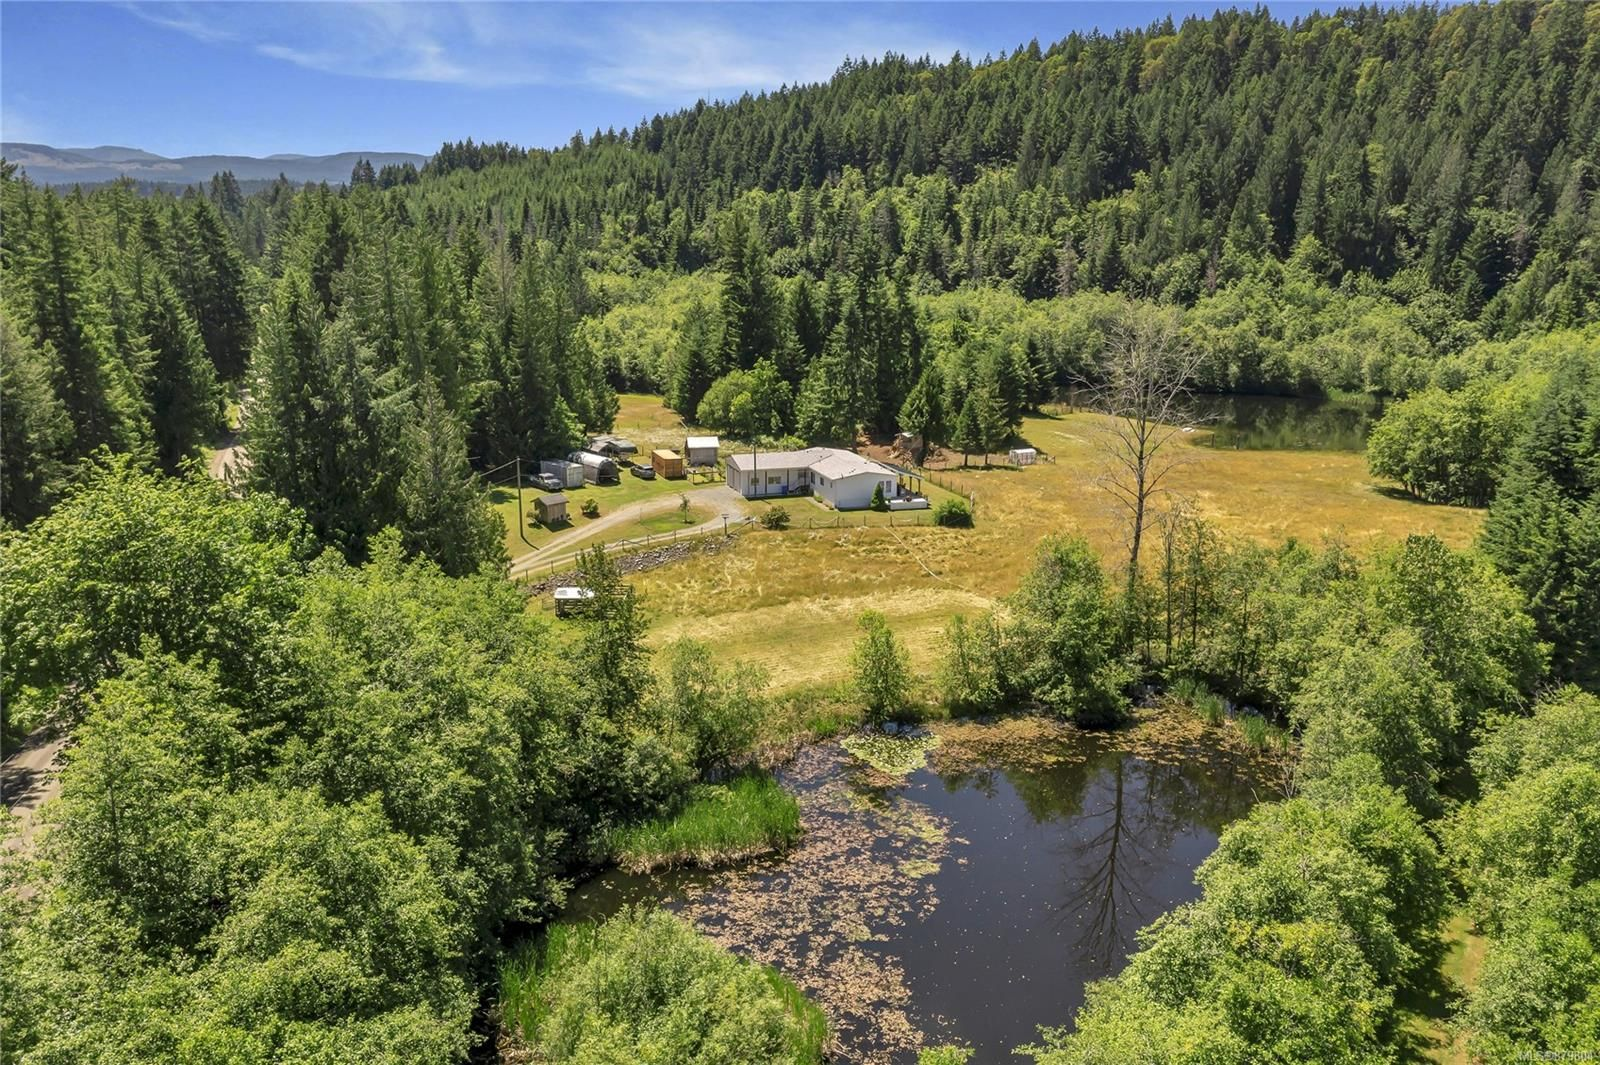 Photo 6: Photos: 3596 Riverside Rd in : ML Cobble Hill Manufactured Home for sale (Malahat & Area)  : MLS®# 879804